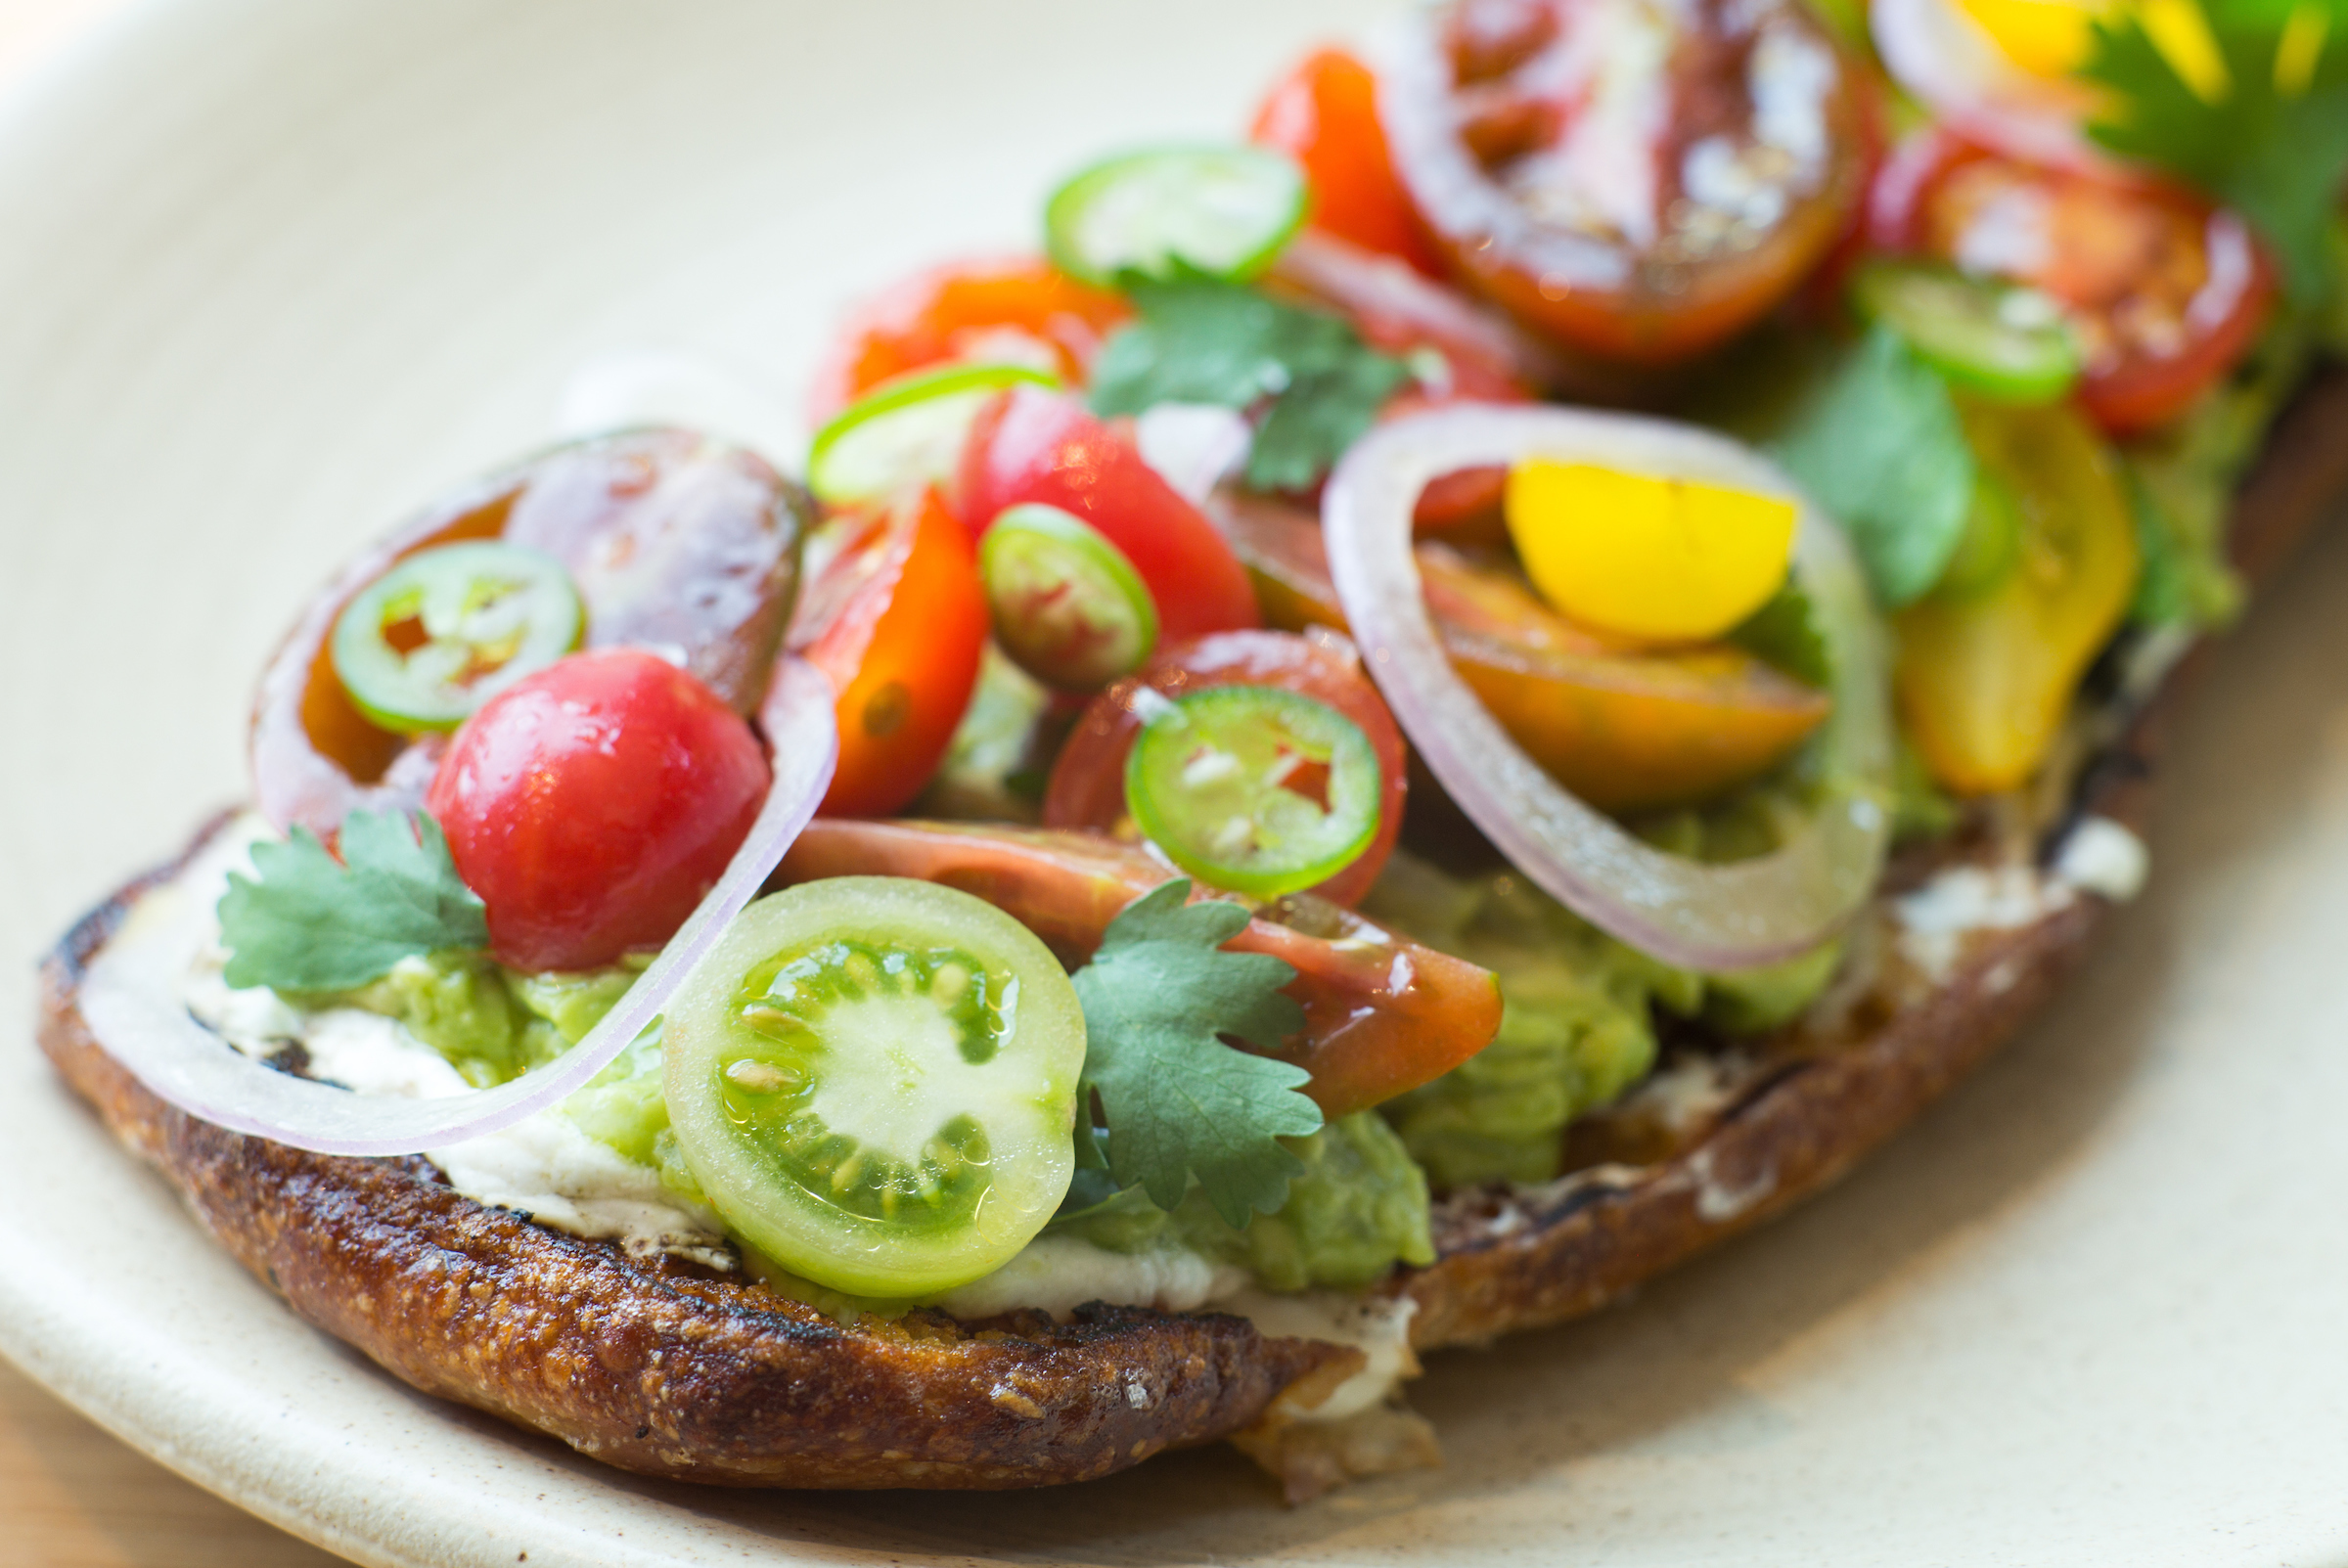 A piece of toasted thickly heaped with colorful cherry tomatoes cut in half, onions, and avocado.